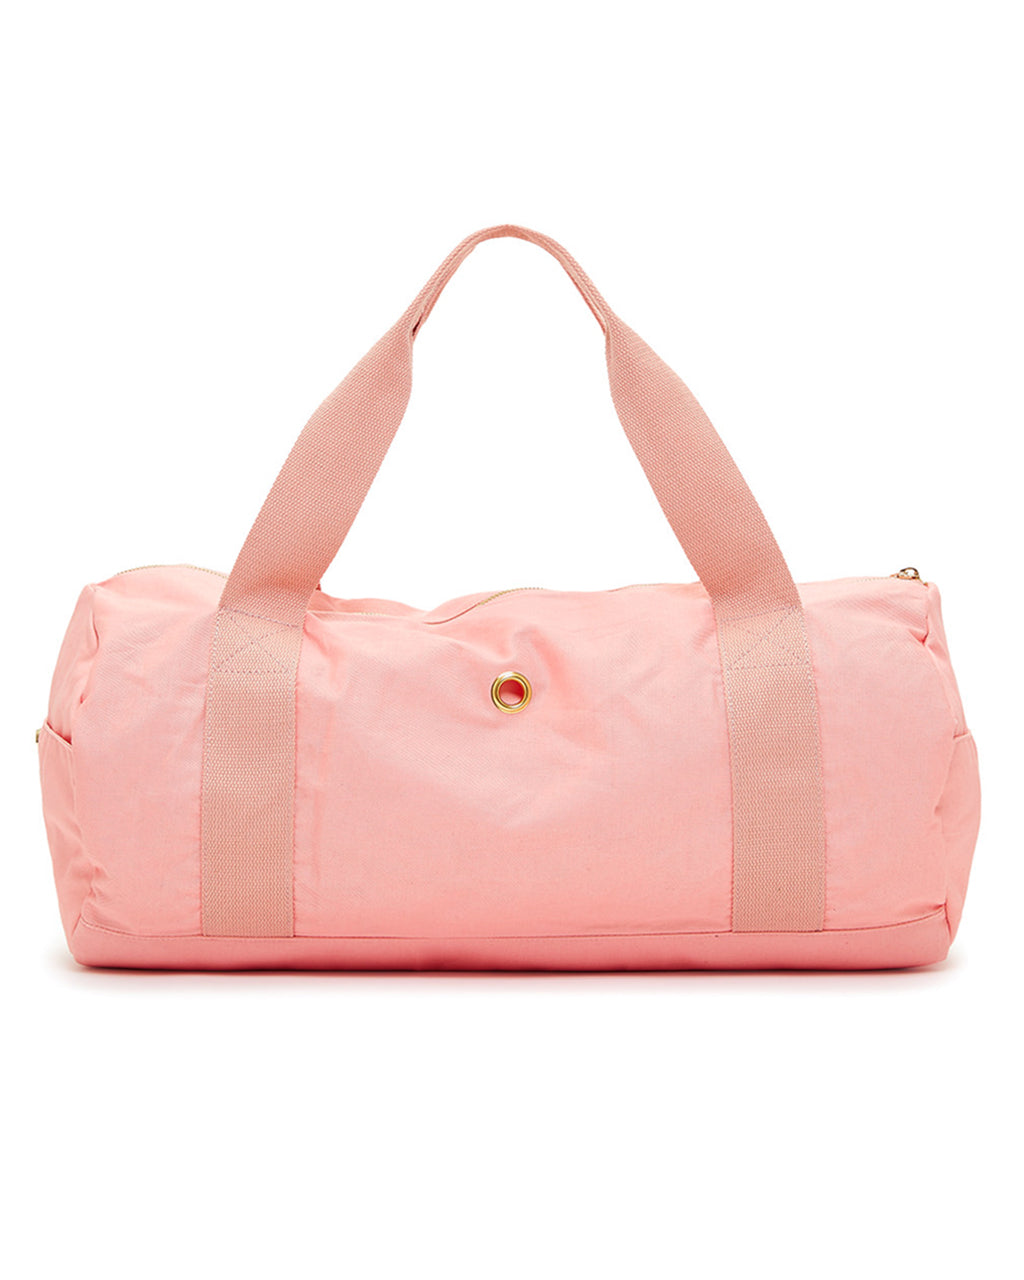 Work It Out Gym Bag